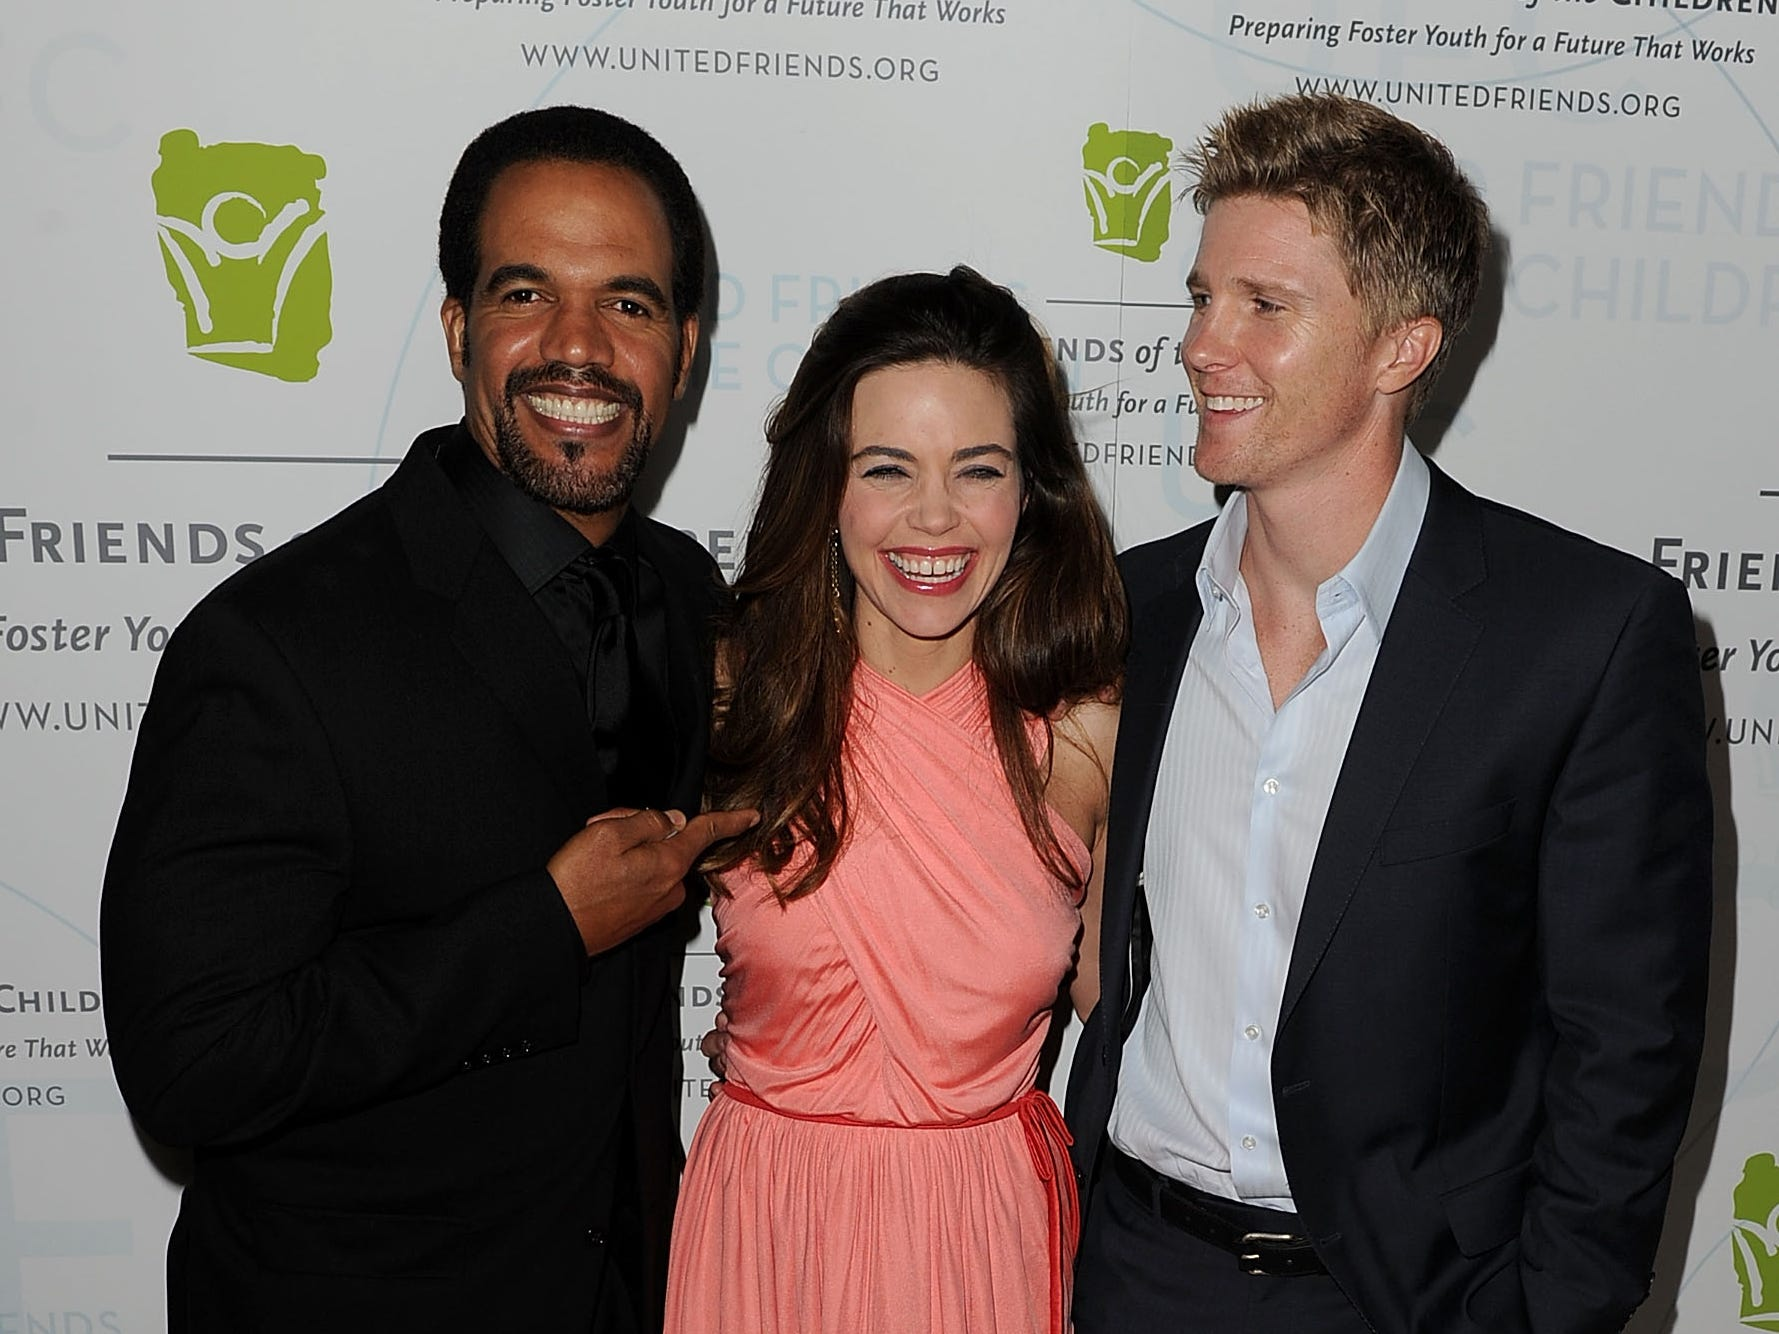 Kristoff St John, Amelia Heinle, and Thad Luckinbill arrive at the United Friends of the Children's Brass Ring Awards Dinner 2010, May 4, 2010 in Los Angeles.